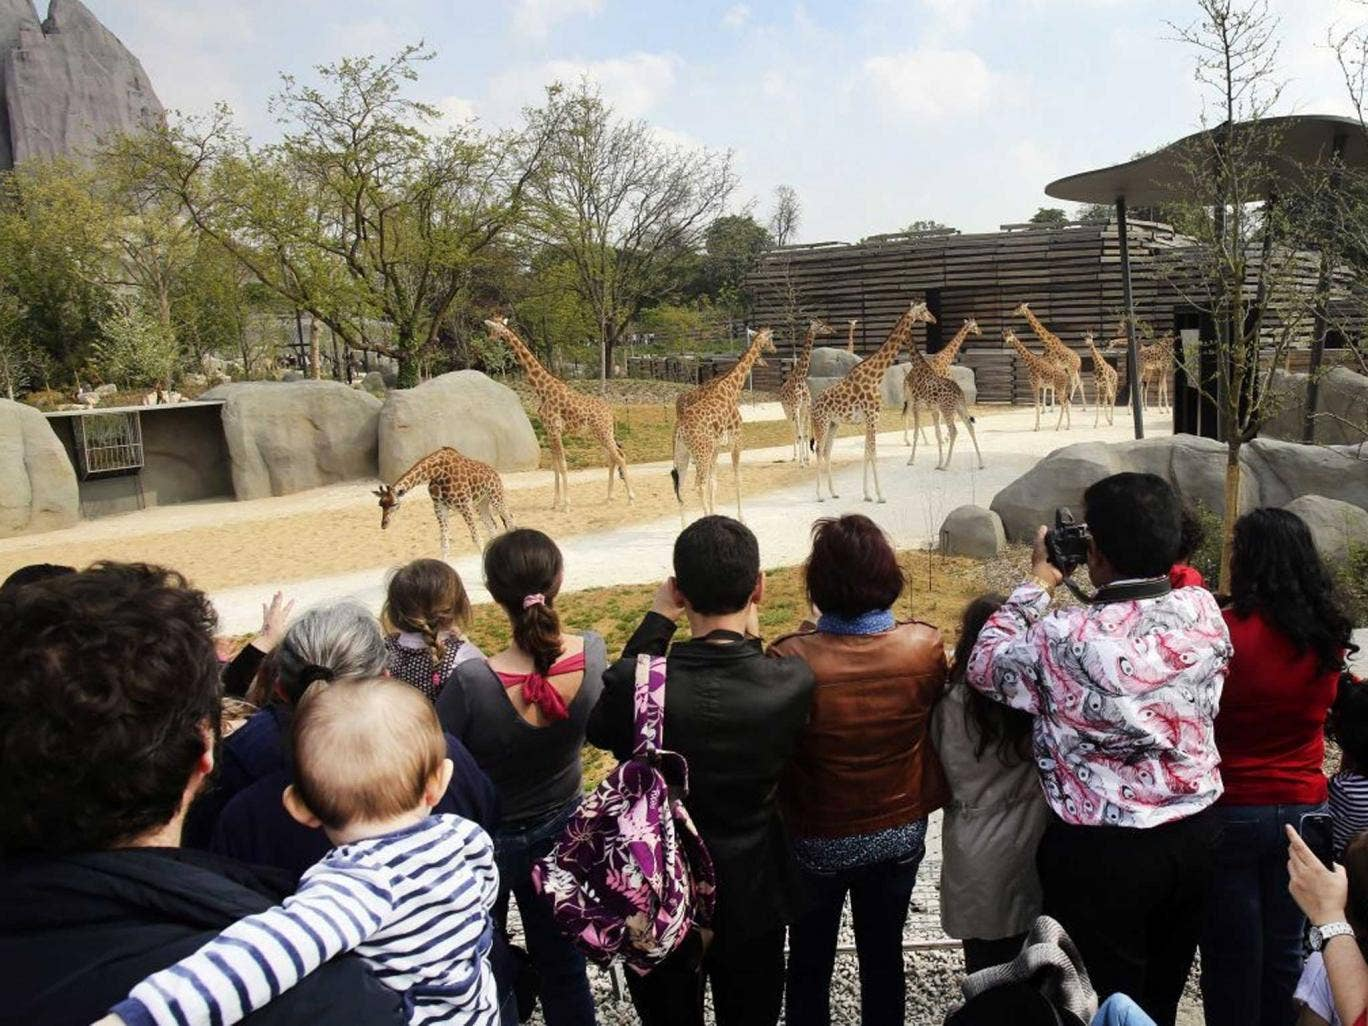 Groundbreaking design and new technology provide zoo animals with near-natural habitats